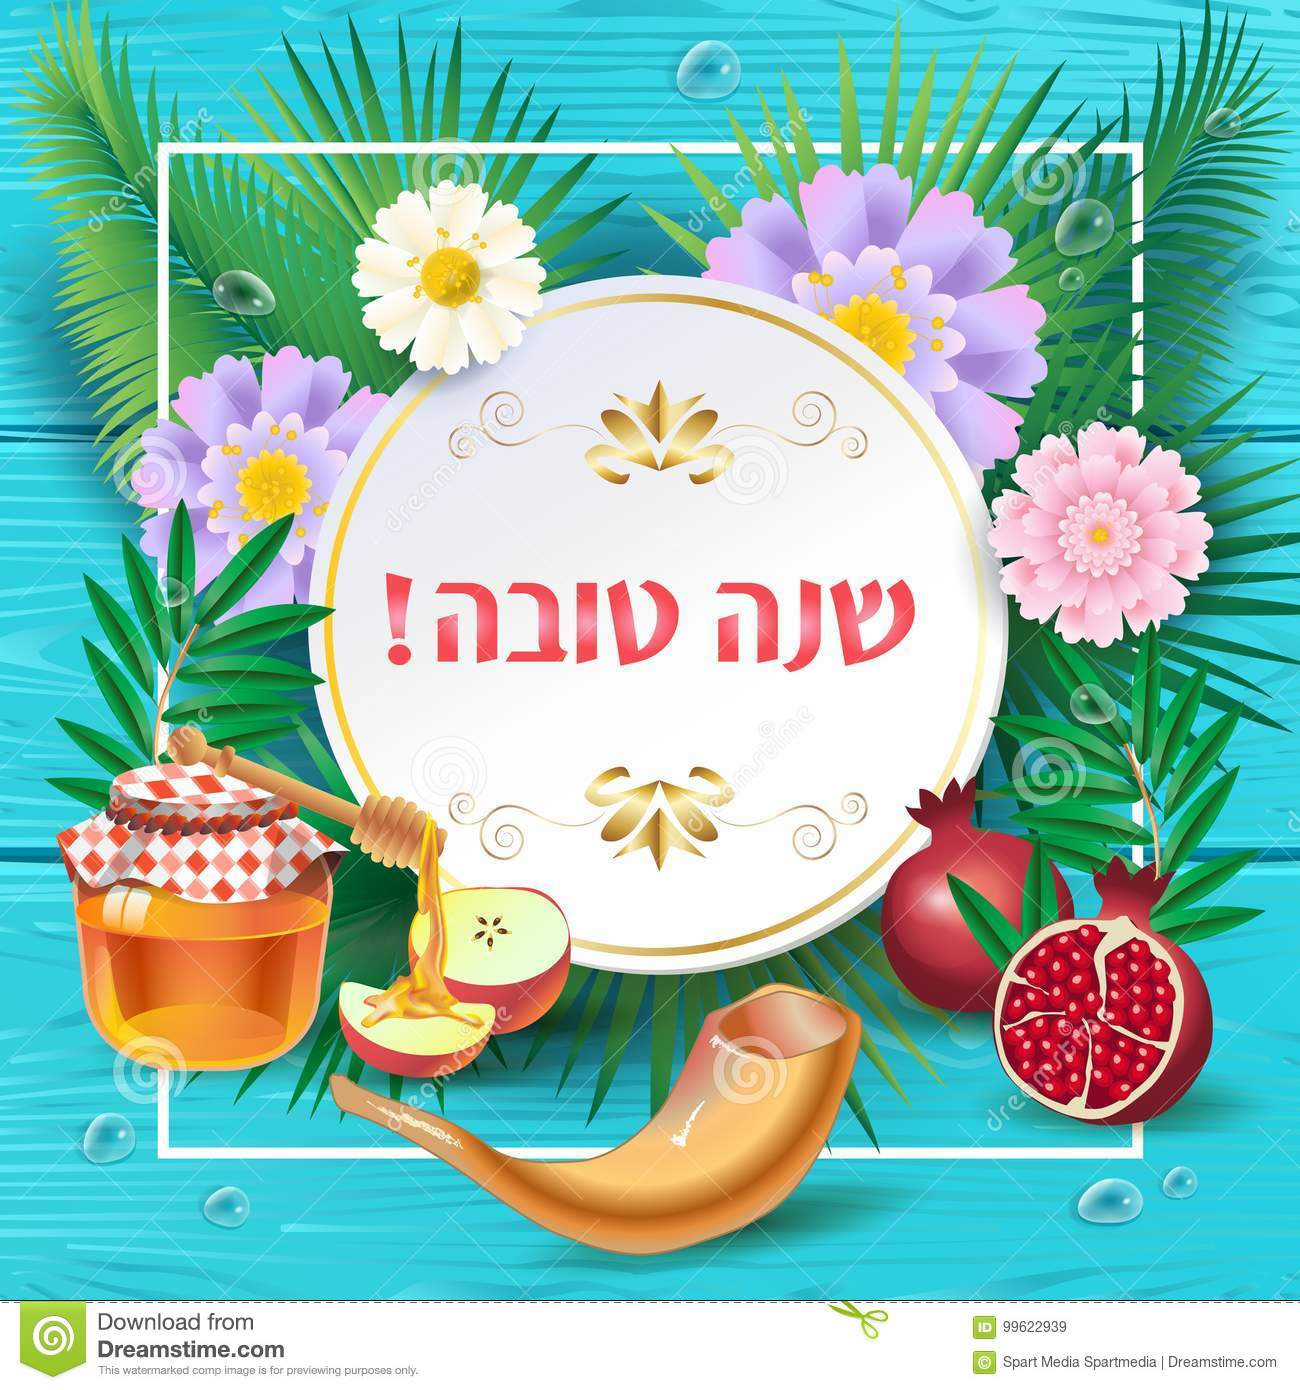 Rosh hashanah stock vector illustration of israel dipper 99622939 download rosh hashanah stock vector illustration of israel dipper 99622939 m4hsunfo